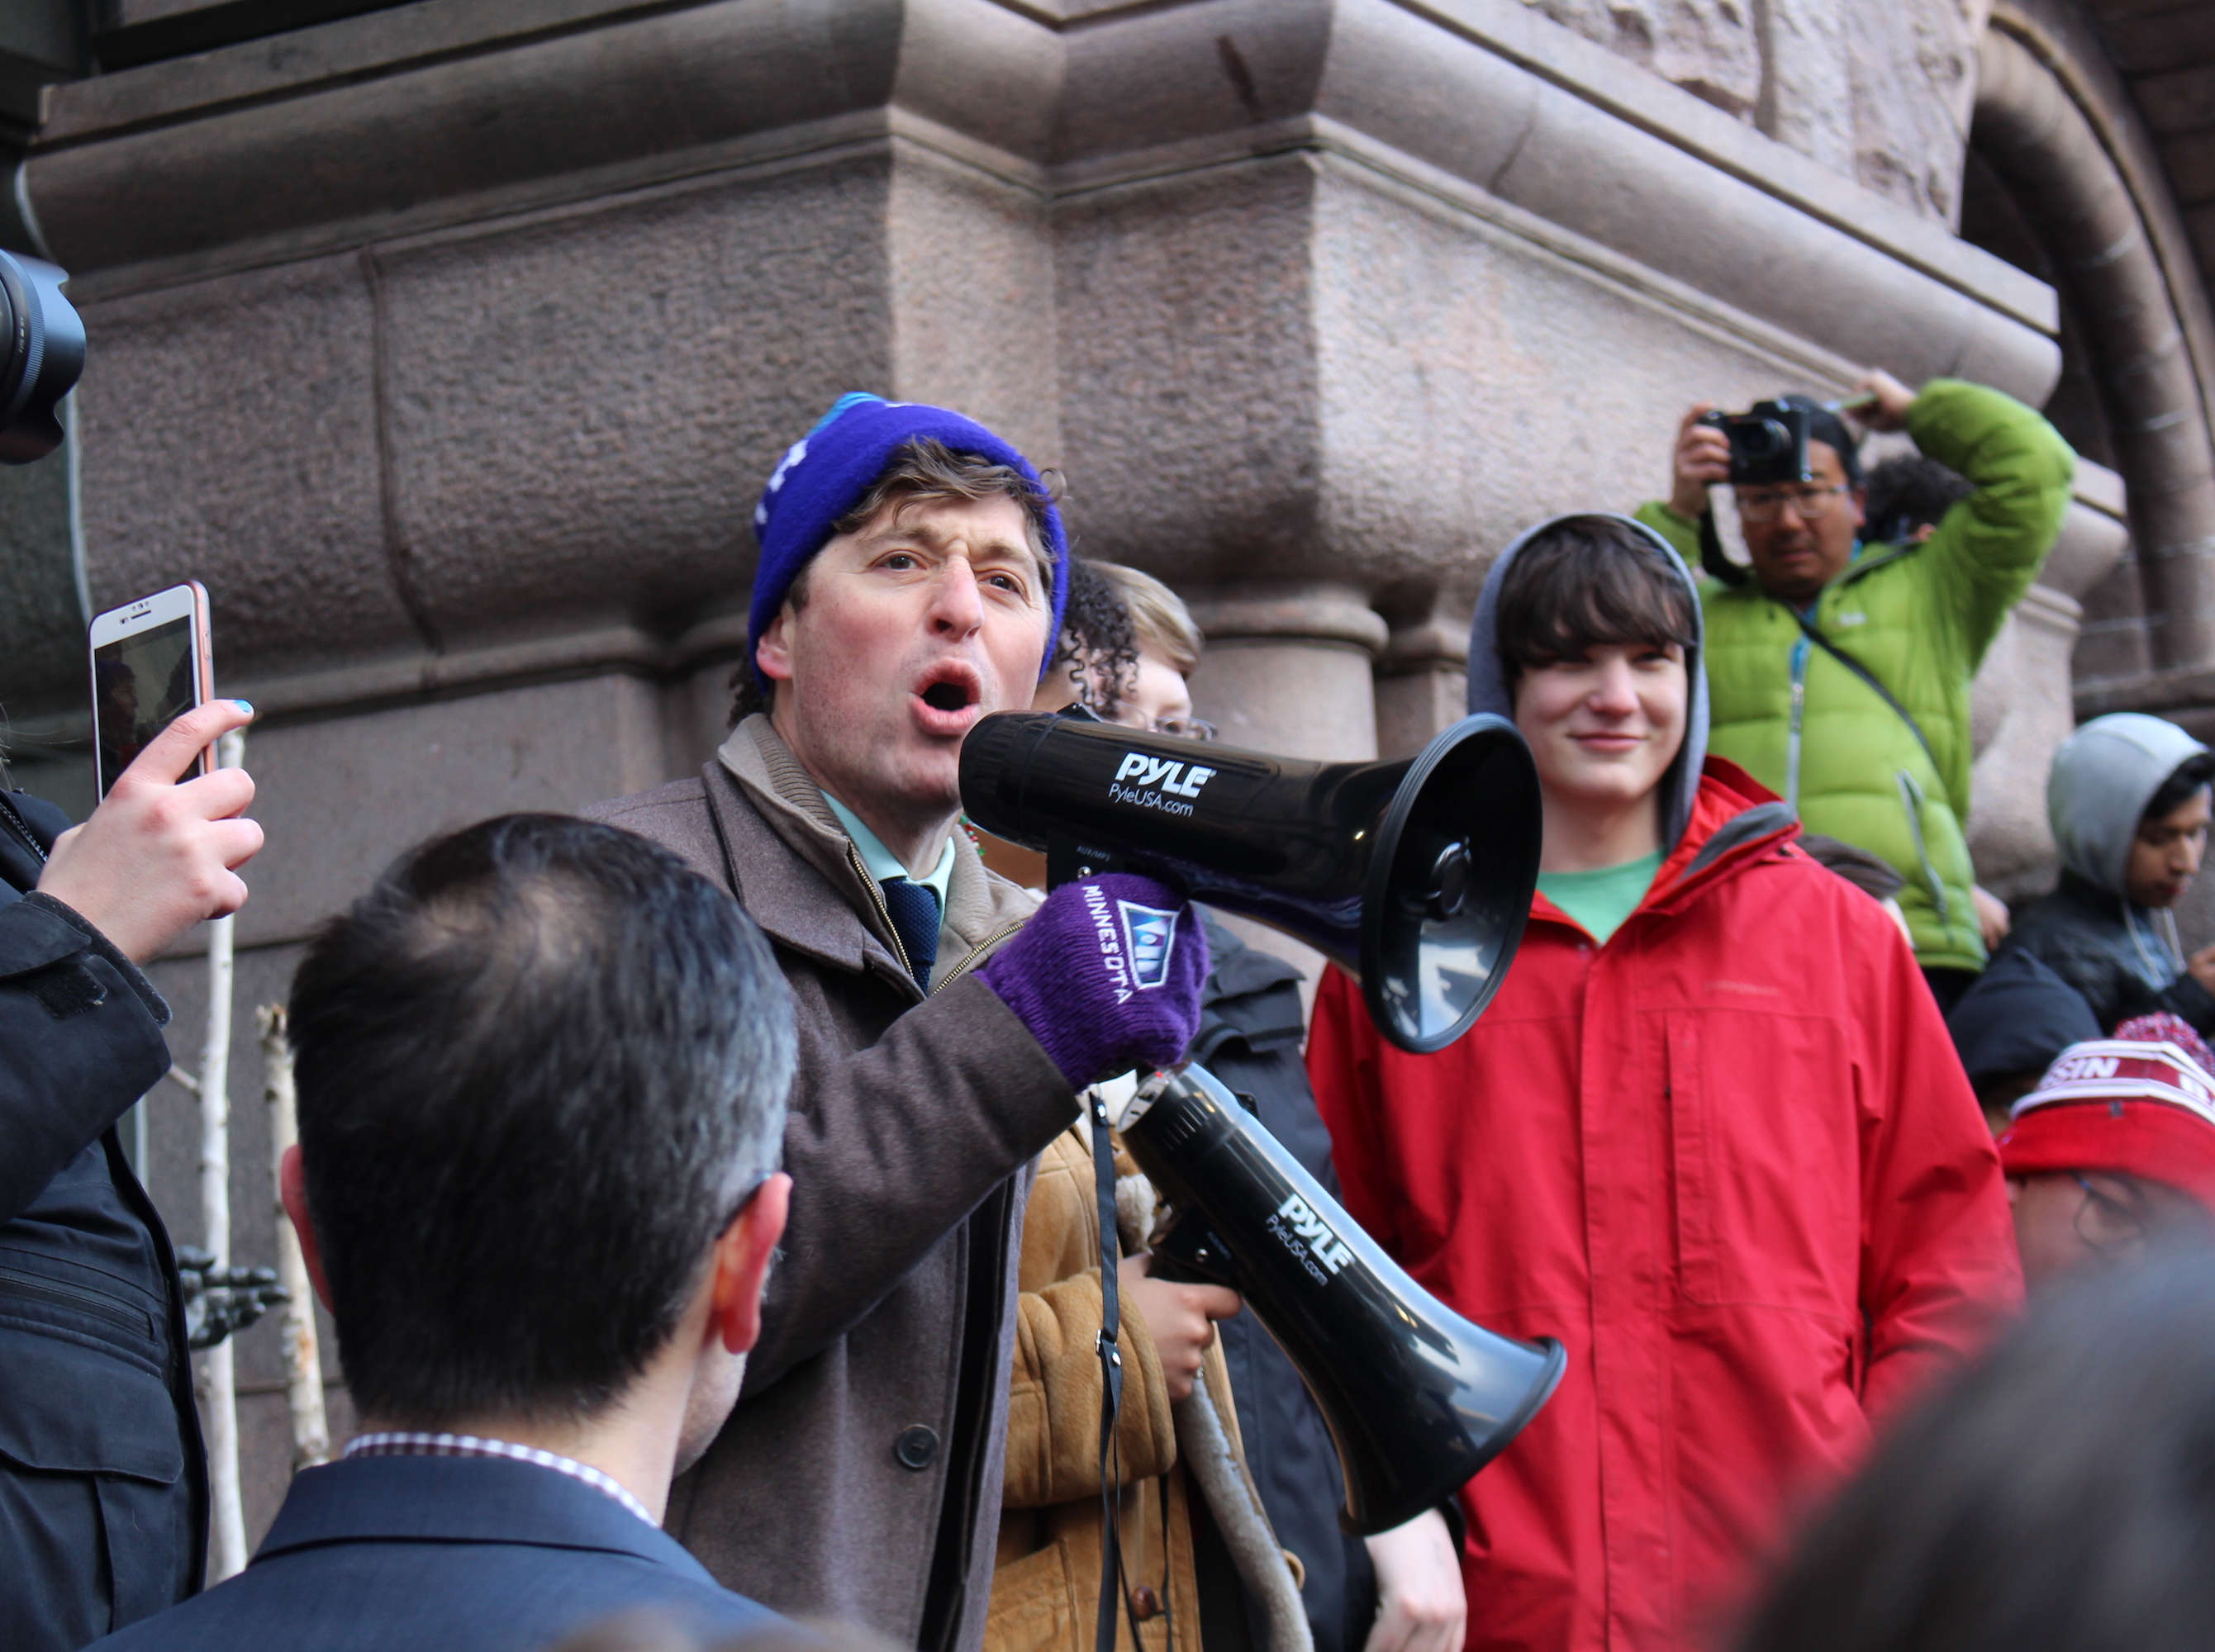 Jacob Frey addresses the student marchers.